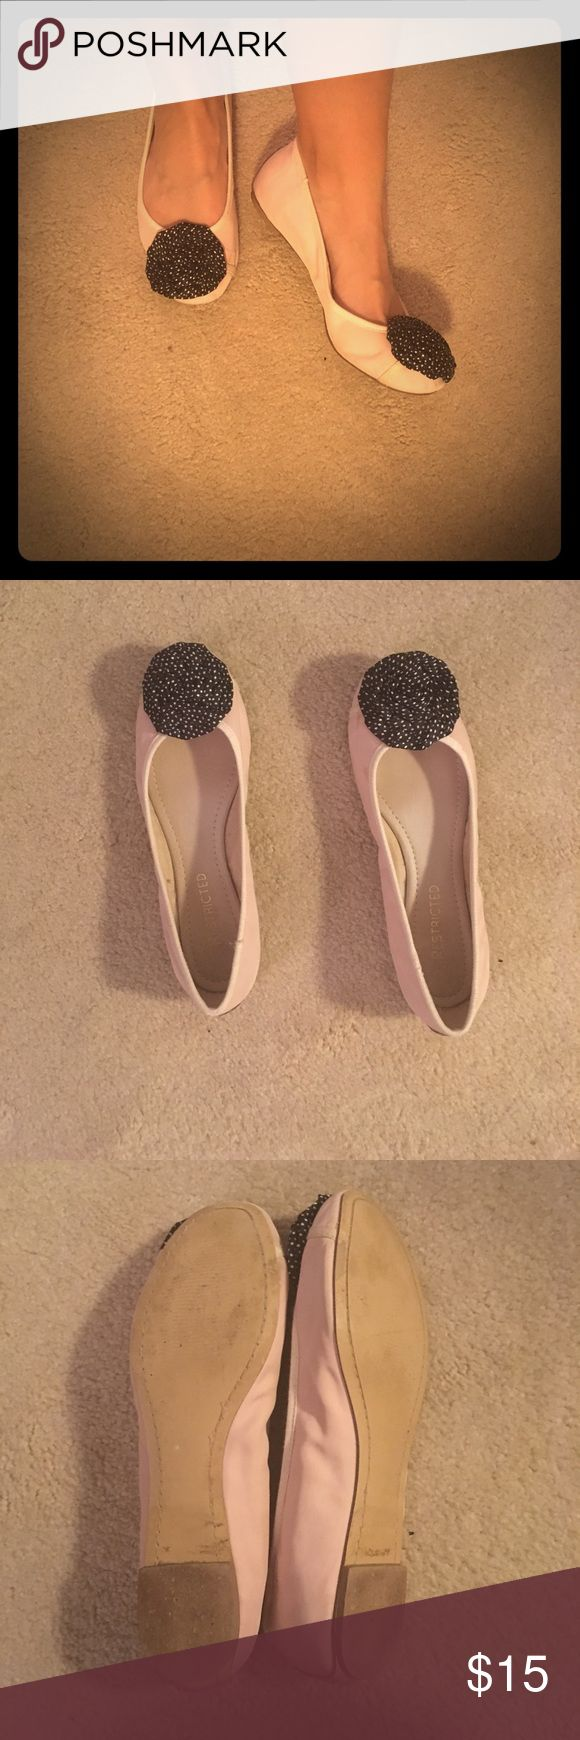 Restricted ballet flats Super cute light pink flats. Love the black roses with white polka dots. Nice wooden sole and padded inside. Hardly worn with a few light brown marks and water wrinkles on sides. Restricted Shoes Flats & Loafers